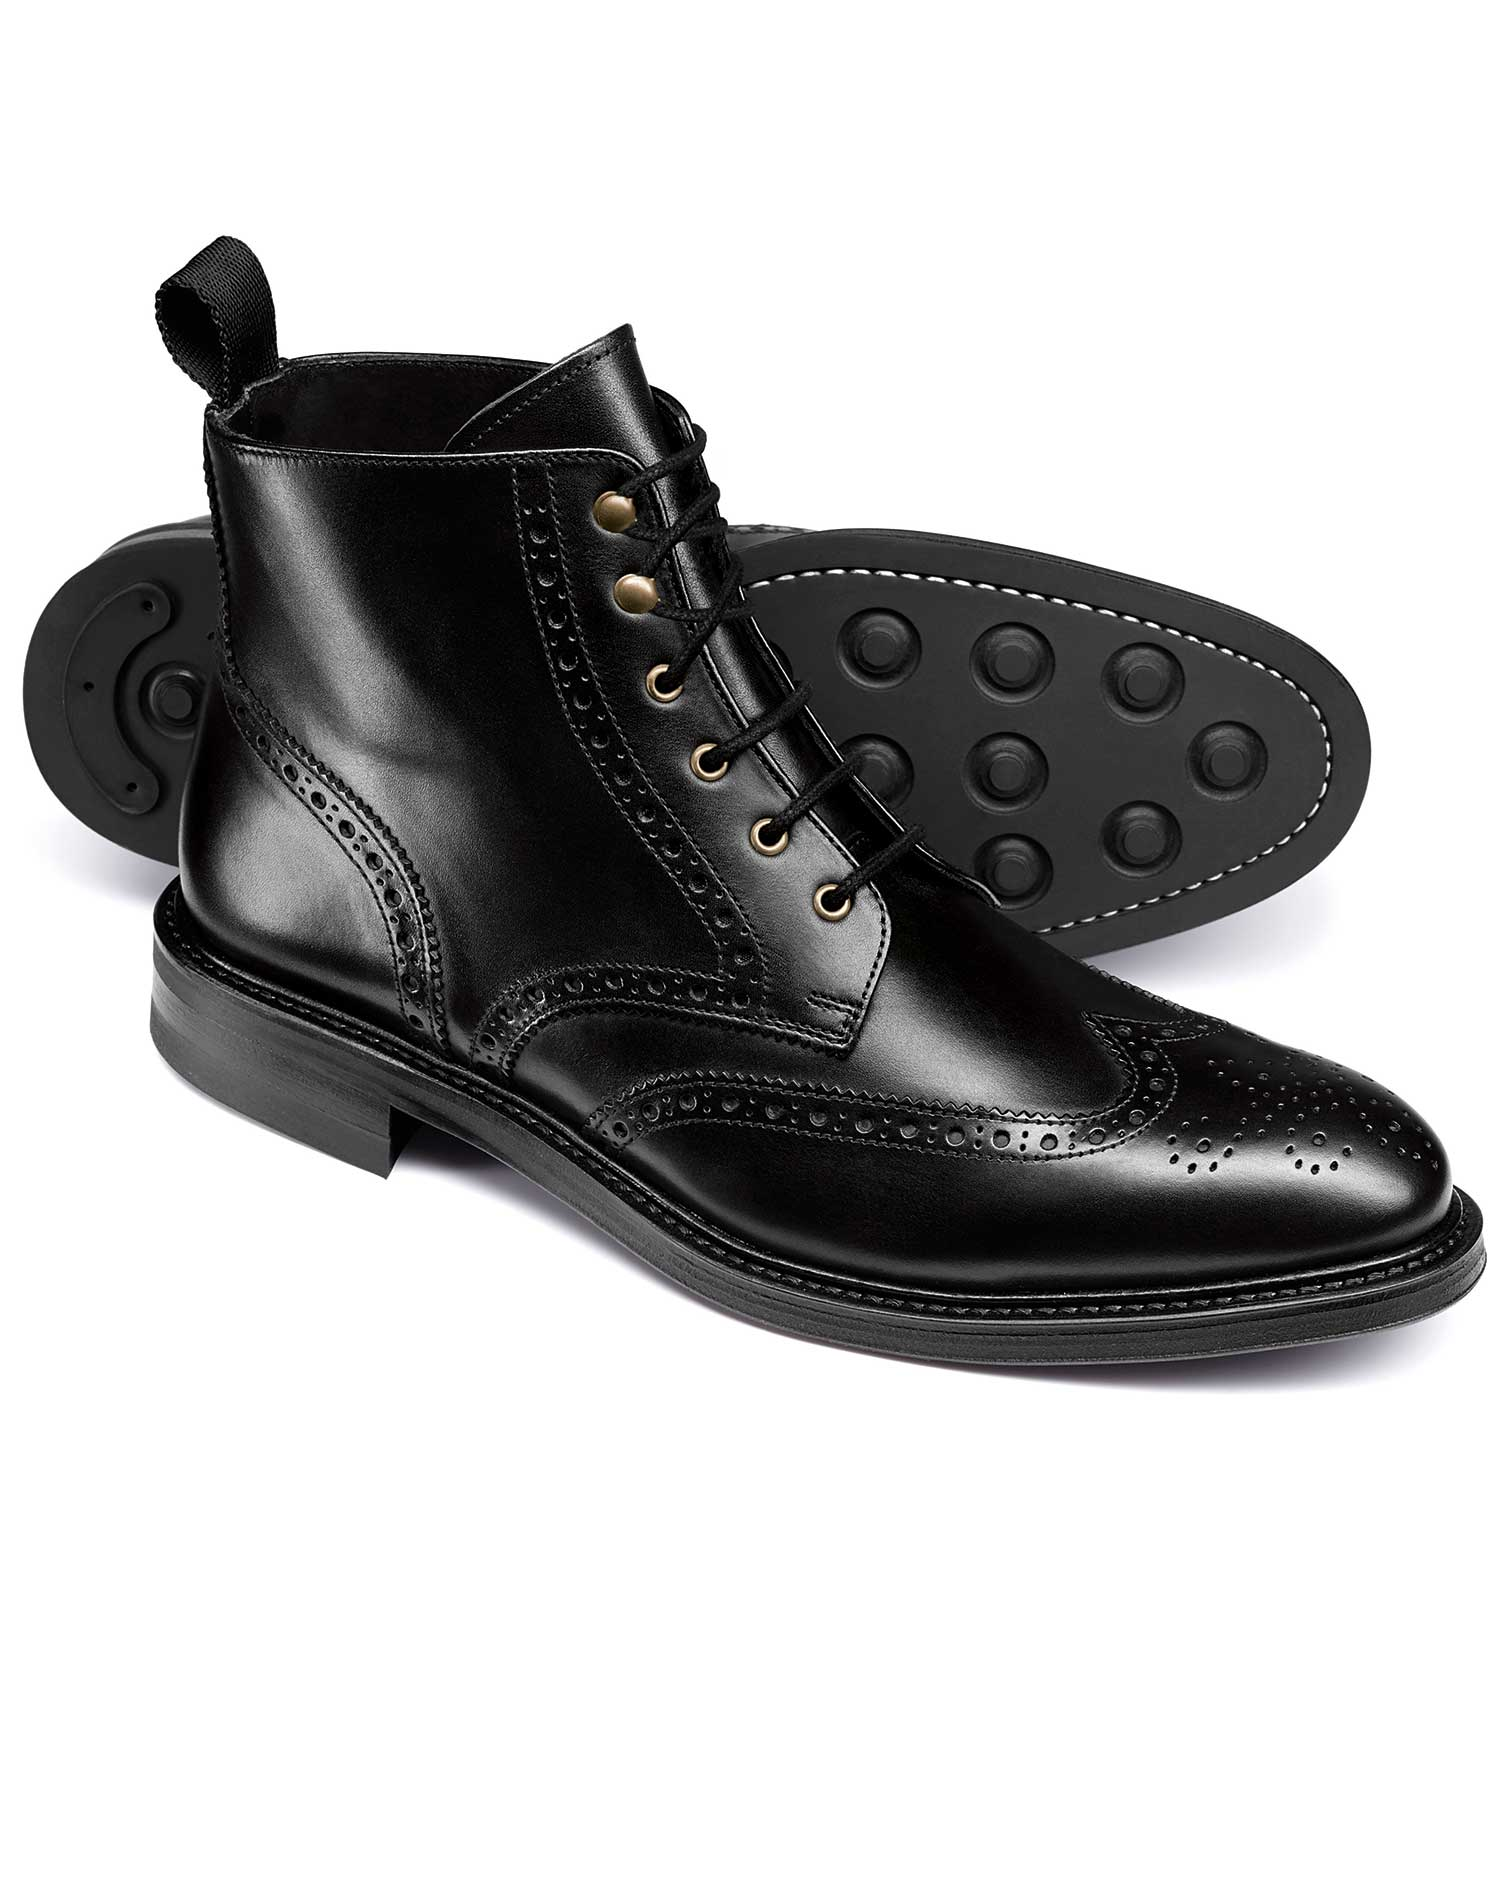 Victorian Men's Shoes & Boots- Lace Up, Spats, Chelsea, Riding Black Brogue Wing Tip Boots Size 9 R by Charles Tyrwhitt £129.00 AT vintagedancer.com